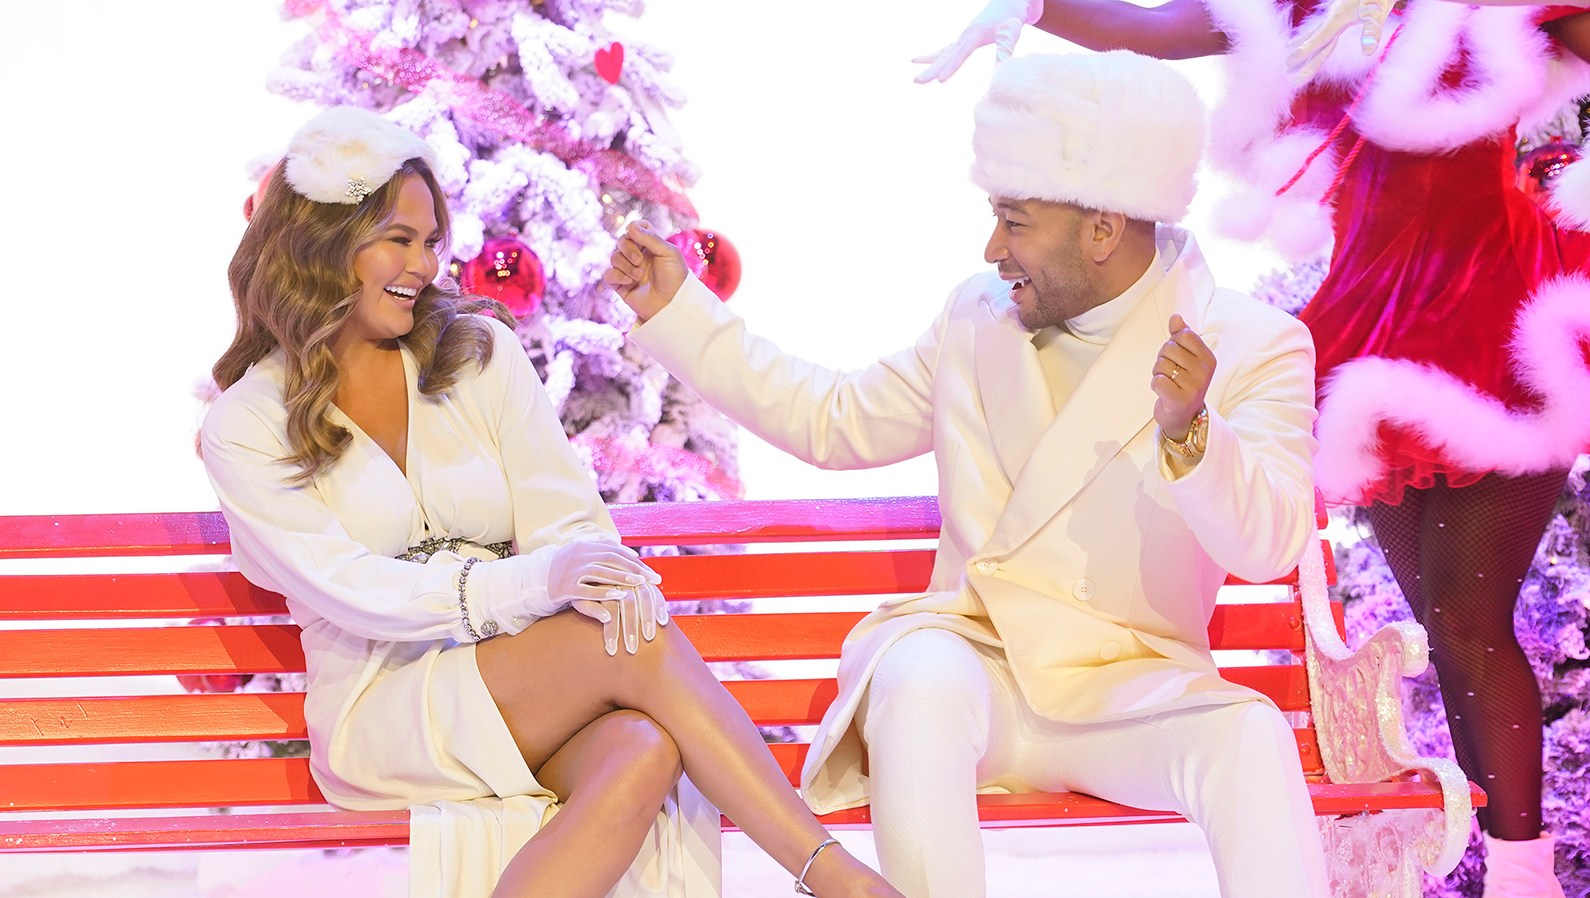 Relive Every Hilarious Time Chrissy Teigen Has Trolled Husband John Legend